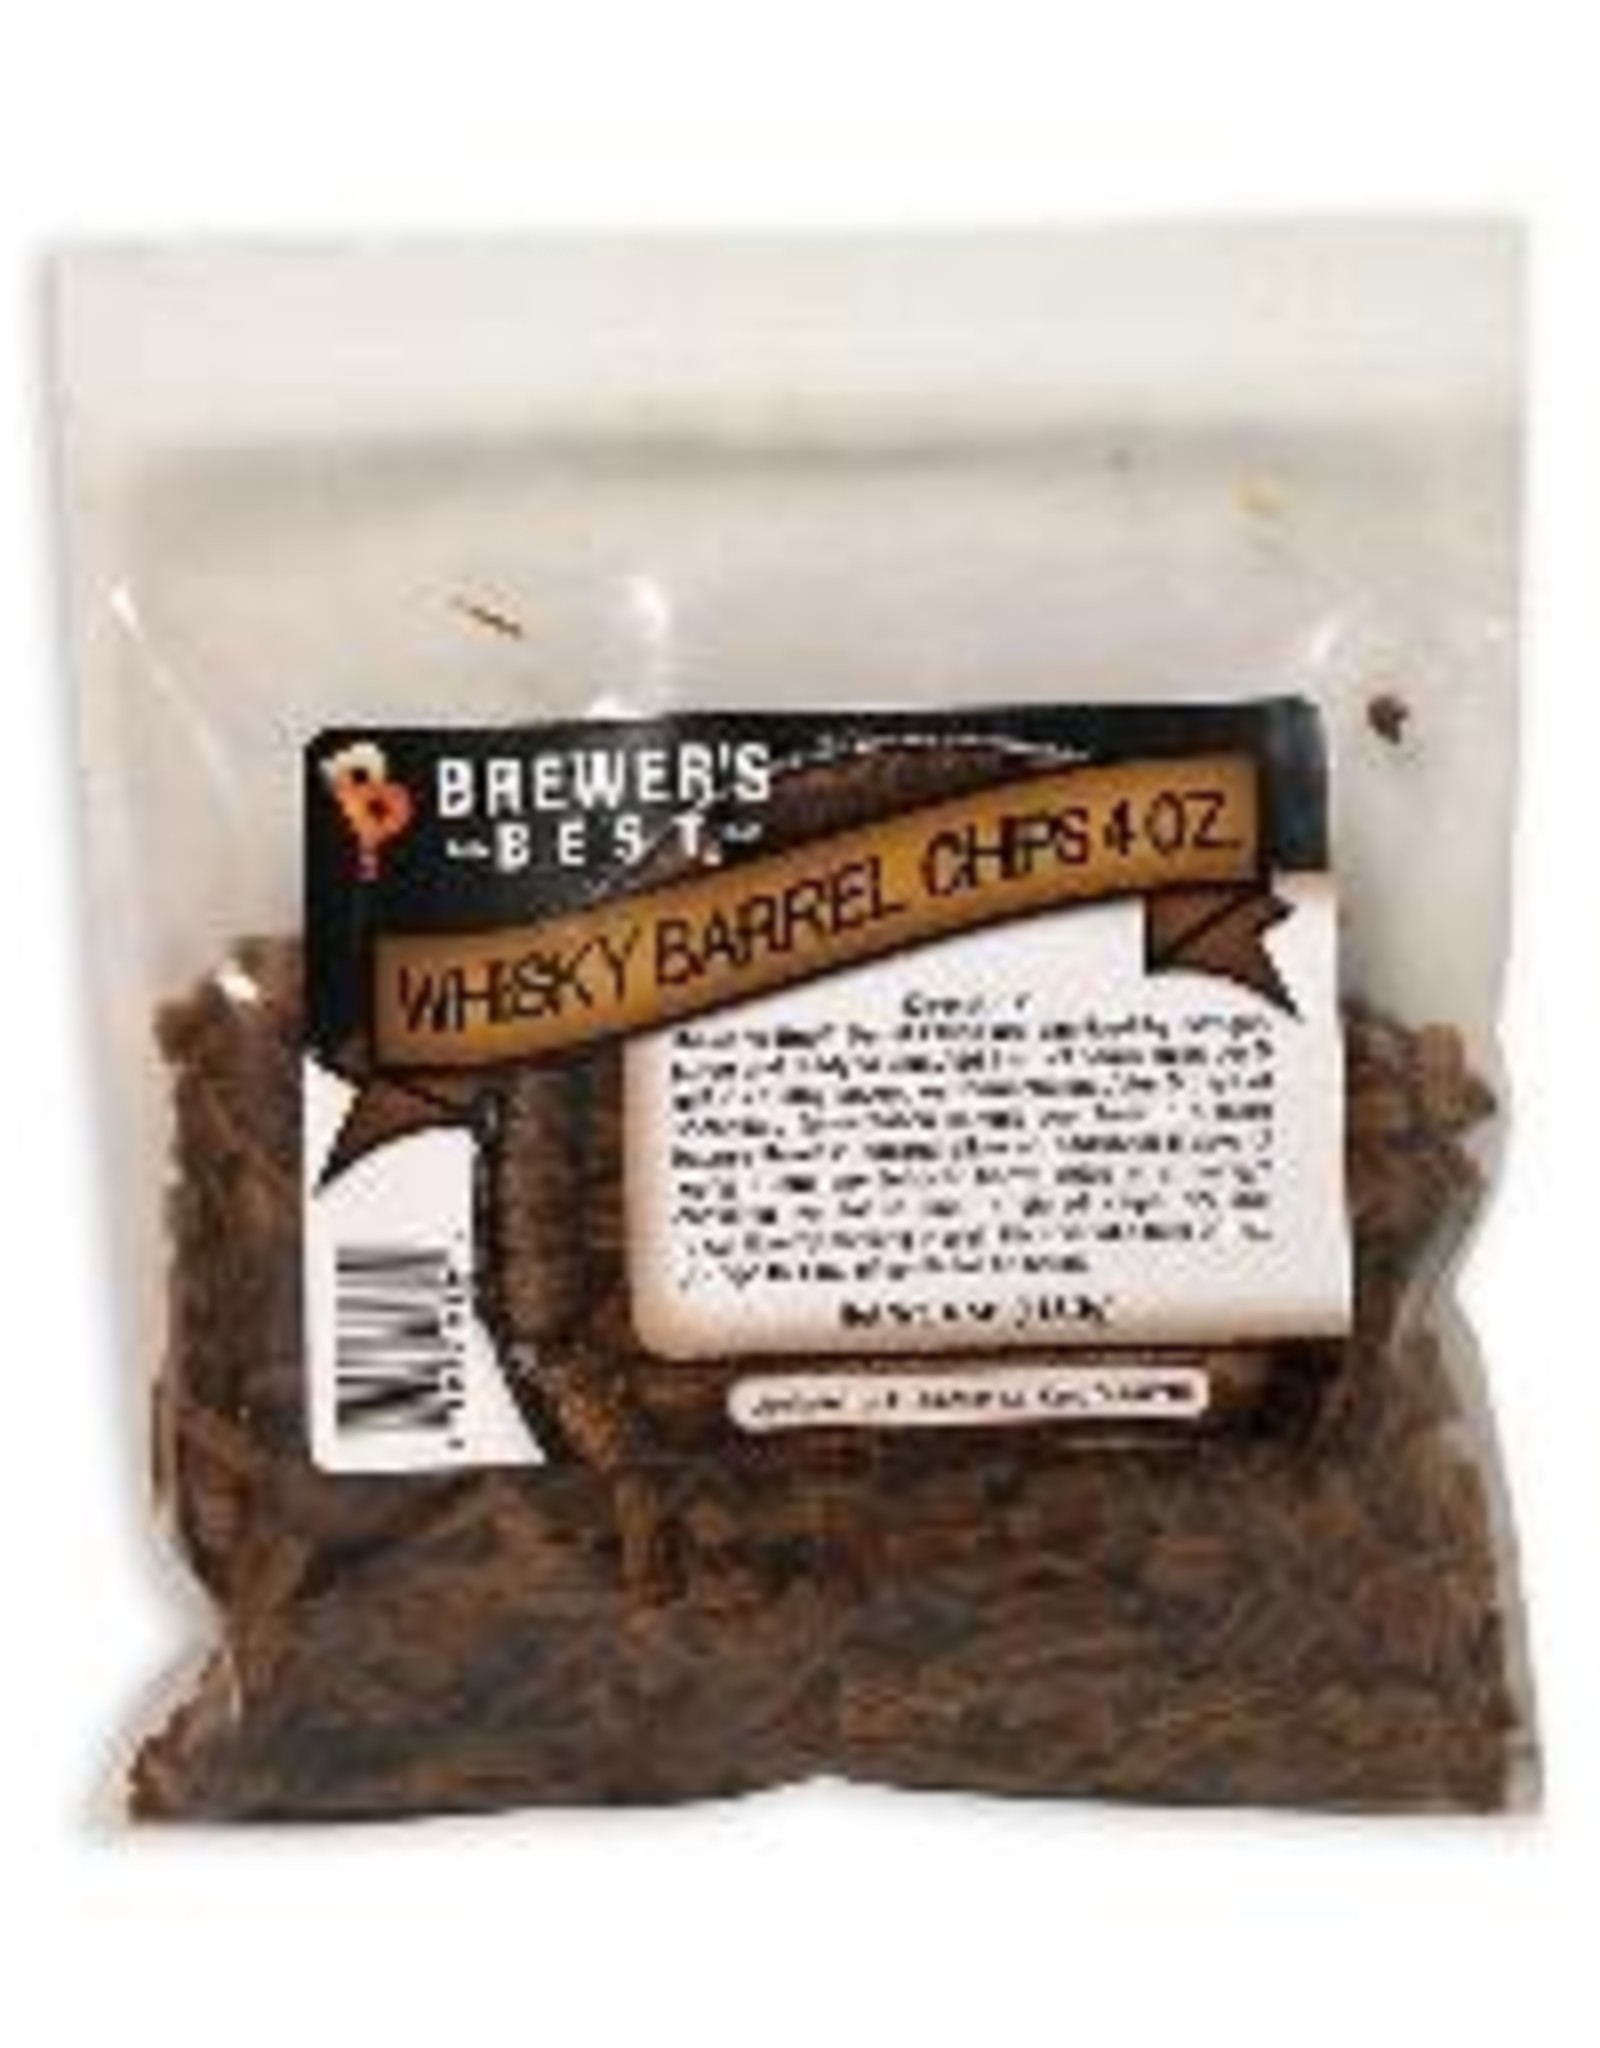 BREWERS BEST Brewer's Best® Barrel Chips are sanitized by nitrogen purge and ready to use. Add 2 oz. of barrel chips per 5 gallons during secondary fermentation. After 5 days of secondary fermentation sample your beer. If a more intense flavor is desired allow an addi